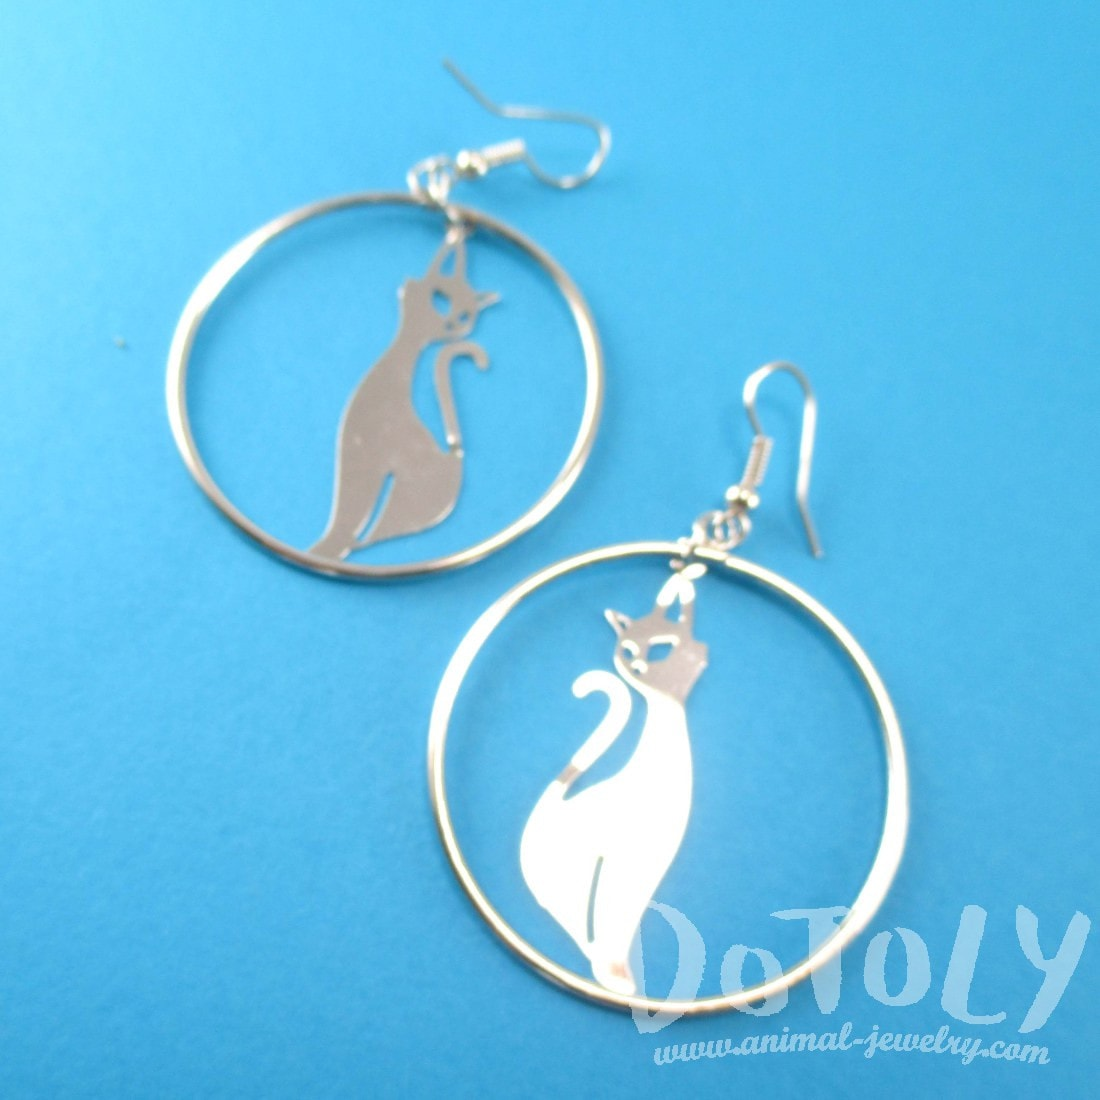 Kitty Cat Silhouette Shaped Dangle Hoop Earrings in Silver